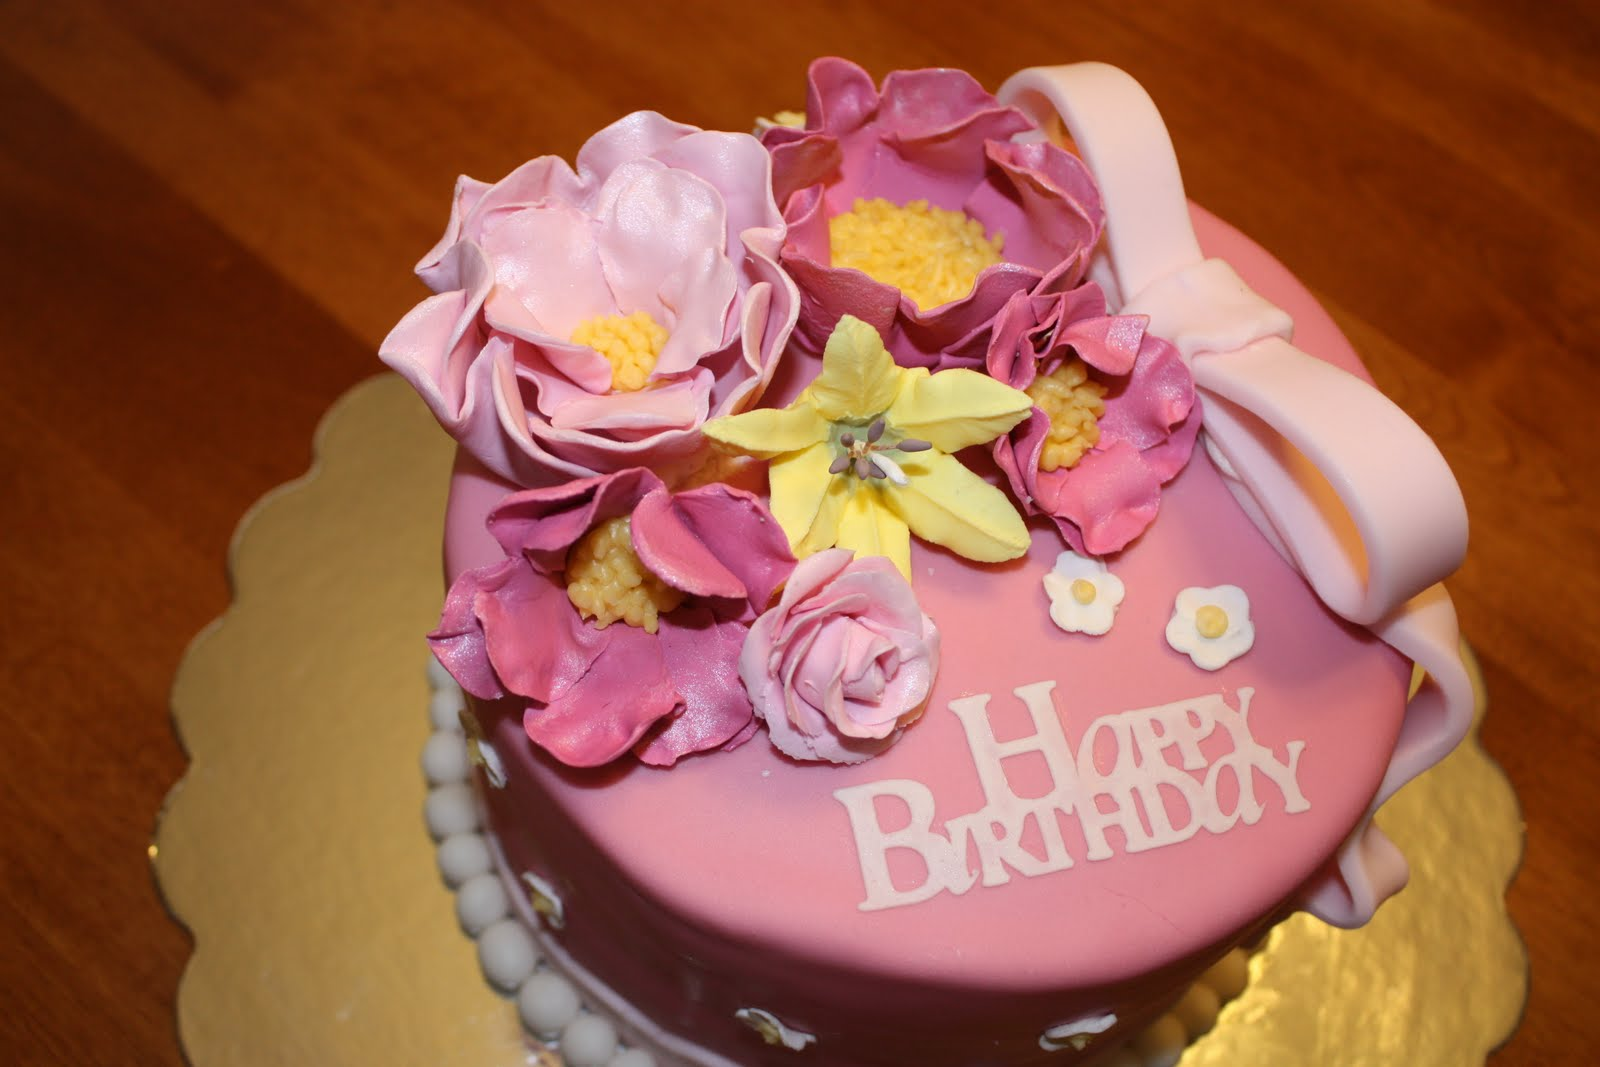 Happy birthday cake flowers pictures flowers healthy 11 most mon flowers for birthday cakes photo birthday cake with izmirmasajfo